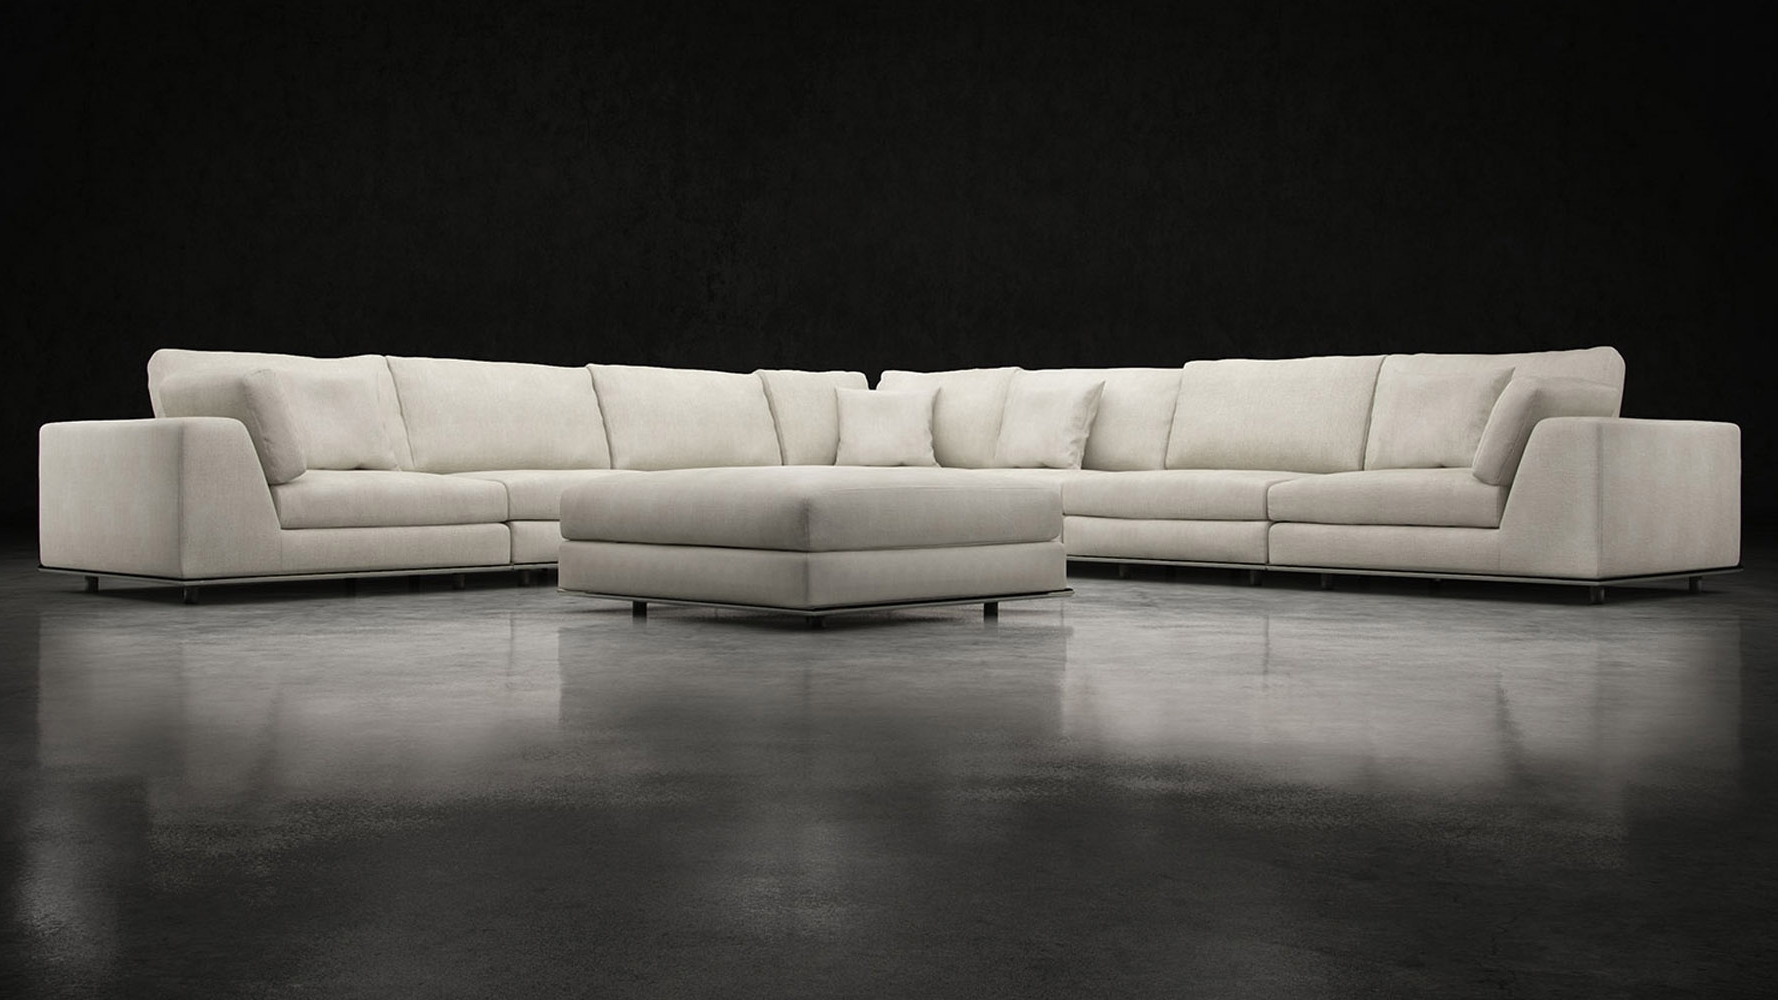 Joining Hardware Sectional Sofas For Well Liked Furniture : 5060 Recliner Sectional Sofa Costco $699 Corner Couch (View 5 of 15)